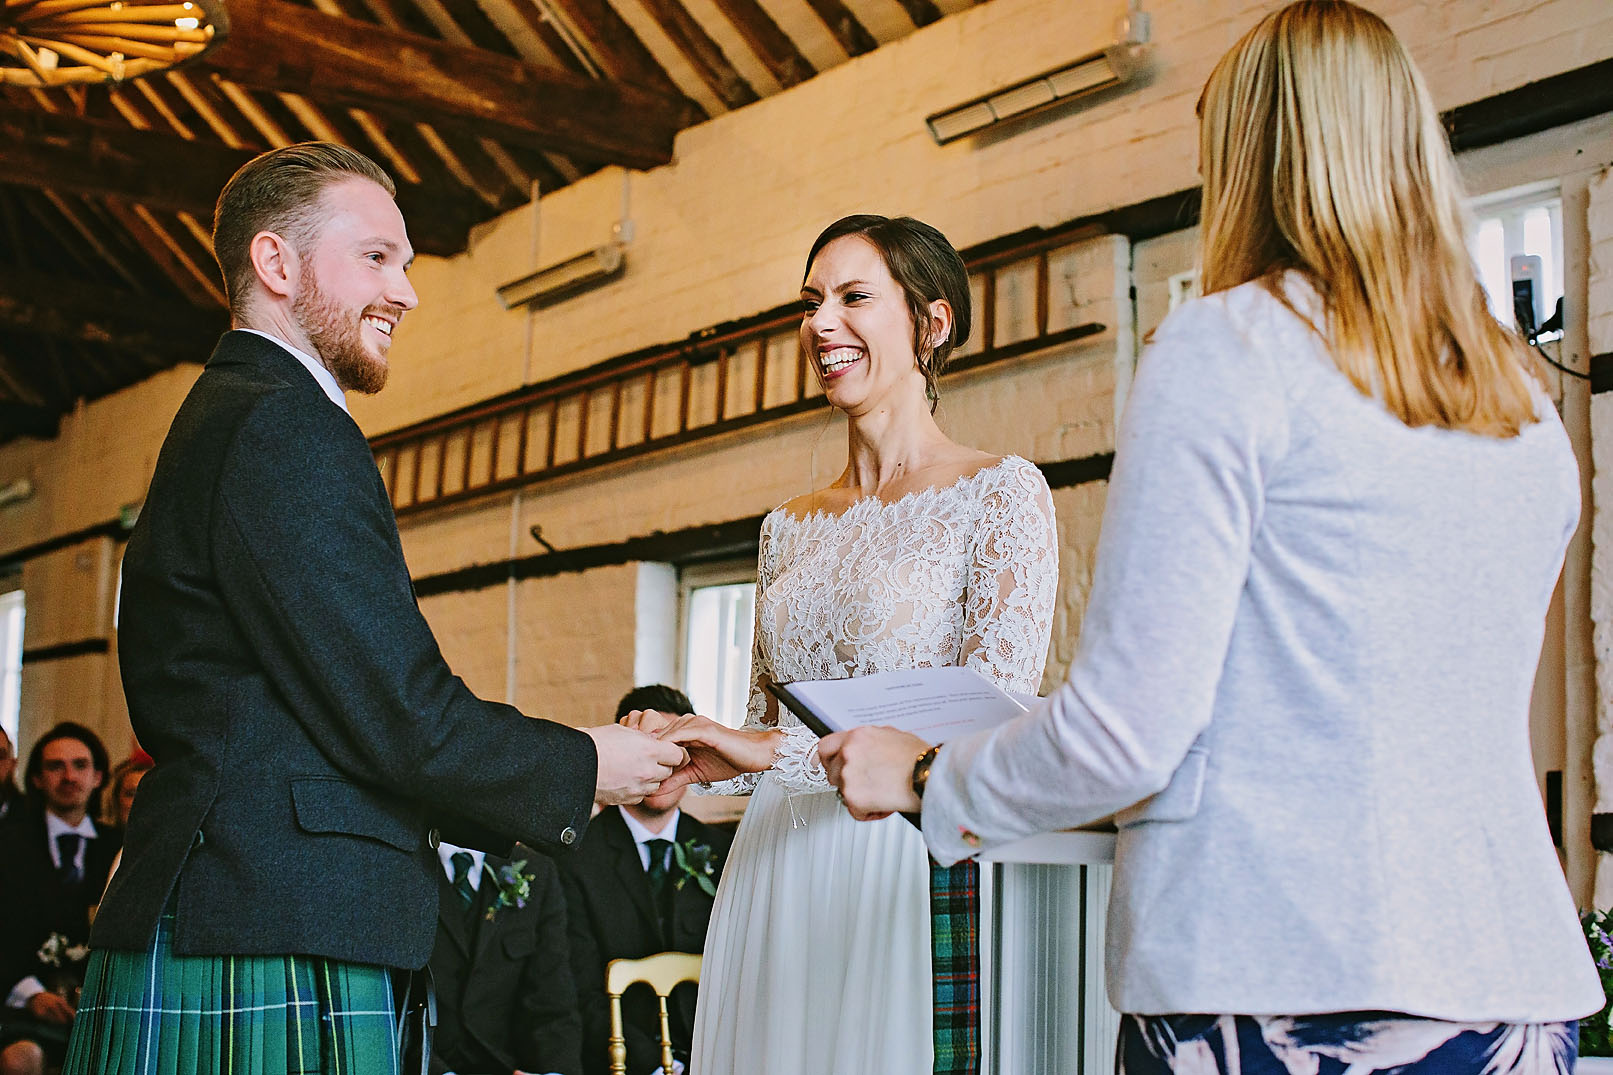 Bride and groom holding hands during marriage vows at their wedding in Berkshire, Lillibrooke Manor & Barns